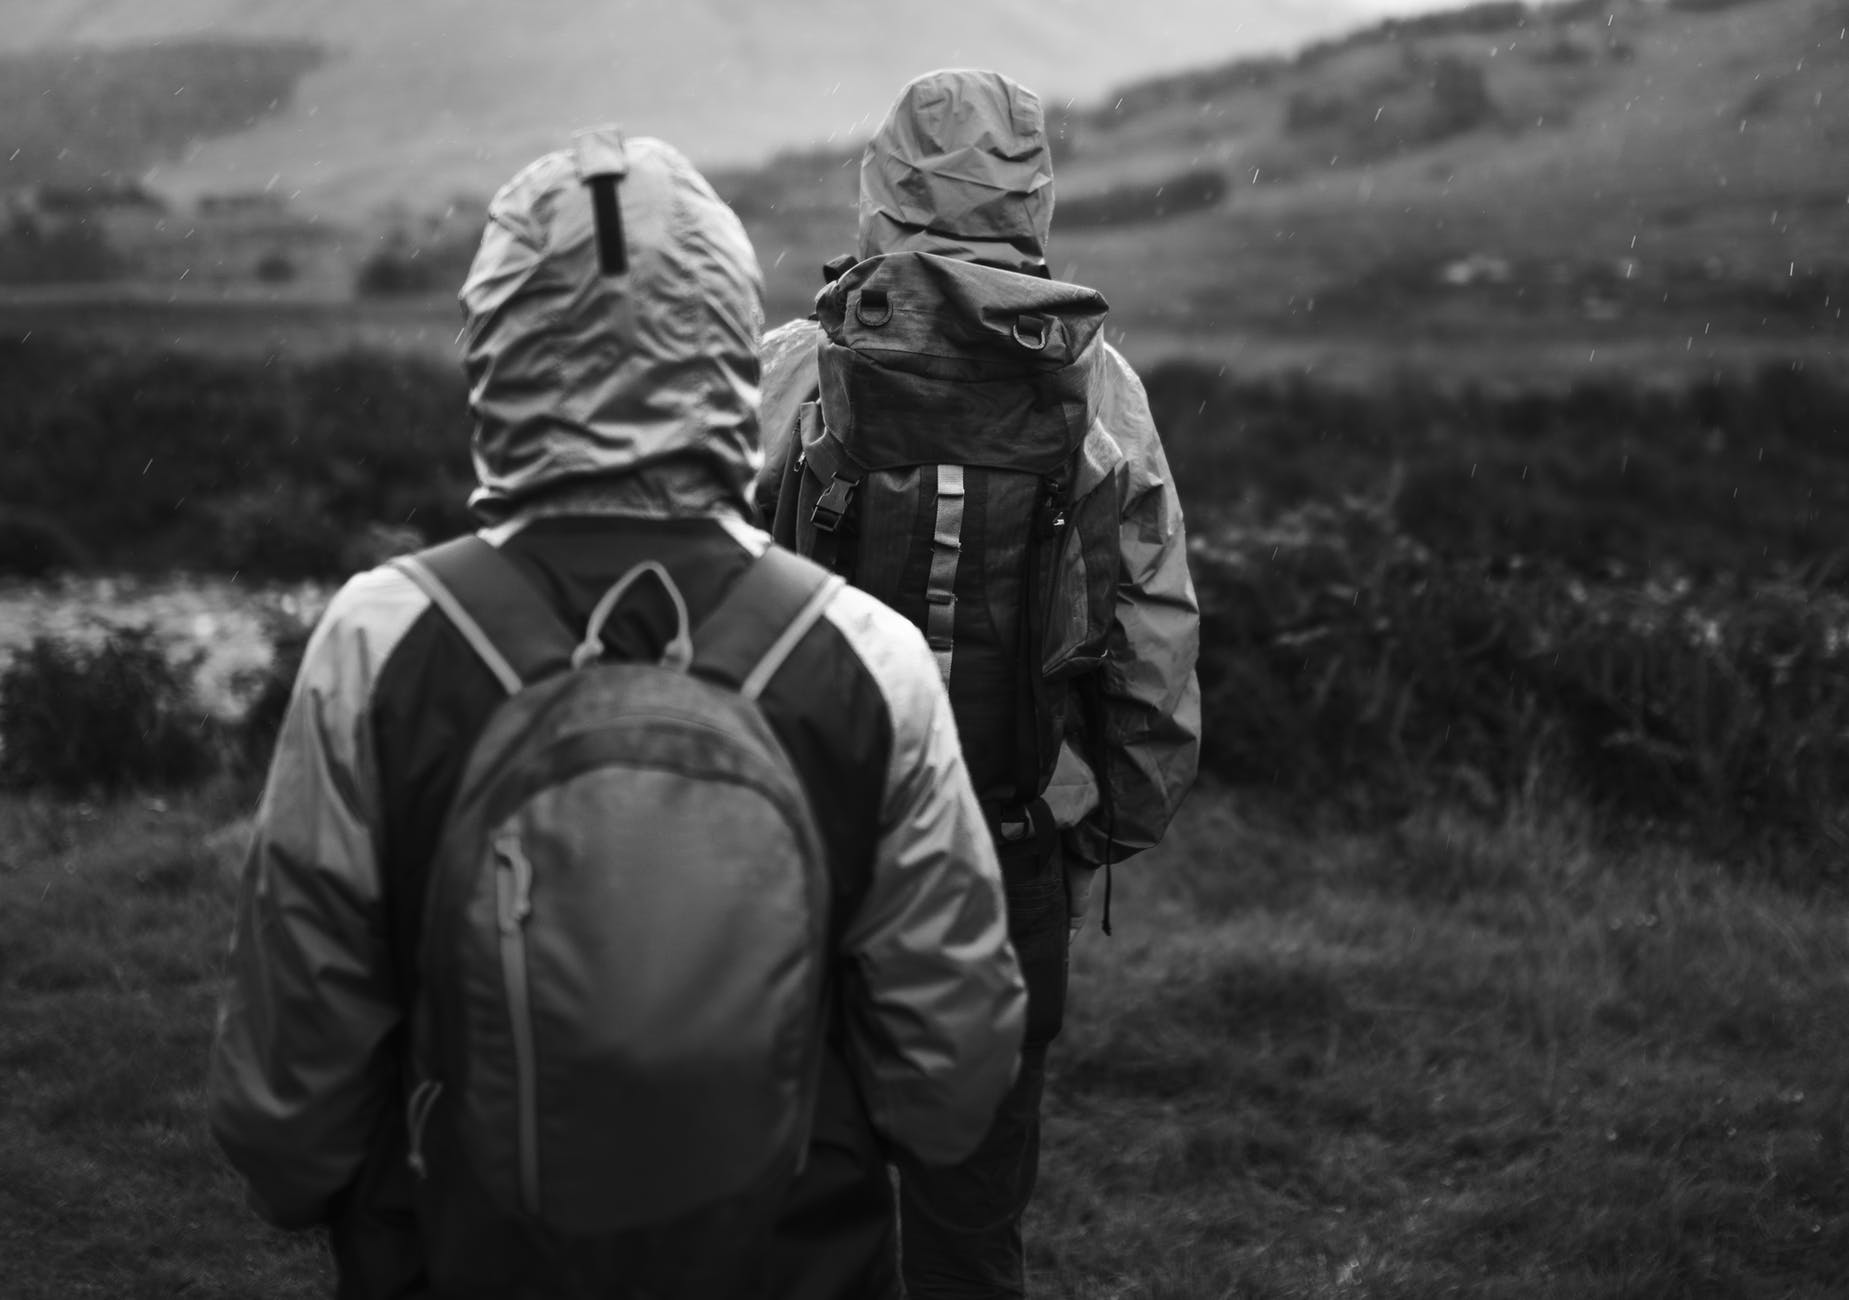 grayscale photo of two hiking backpackers